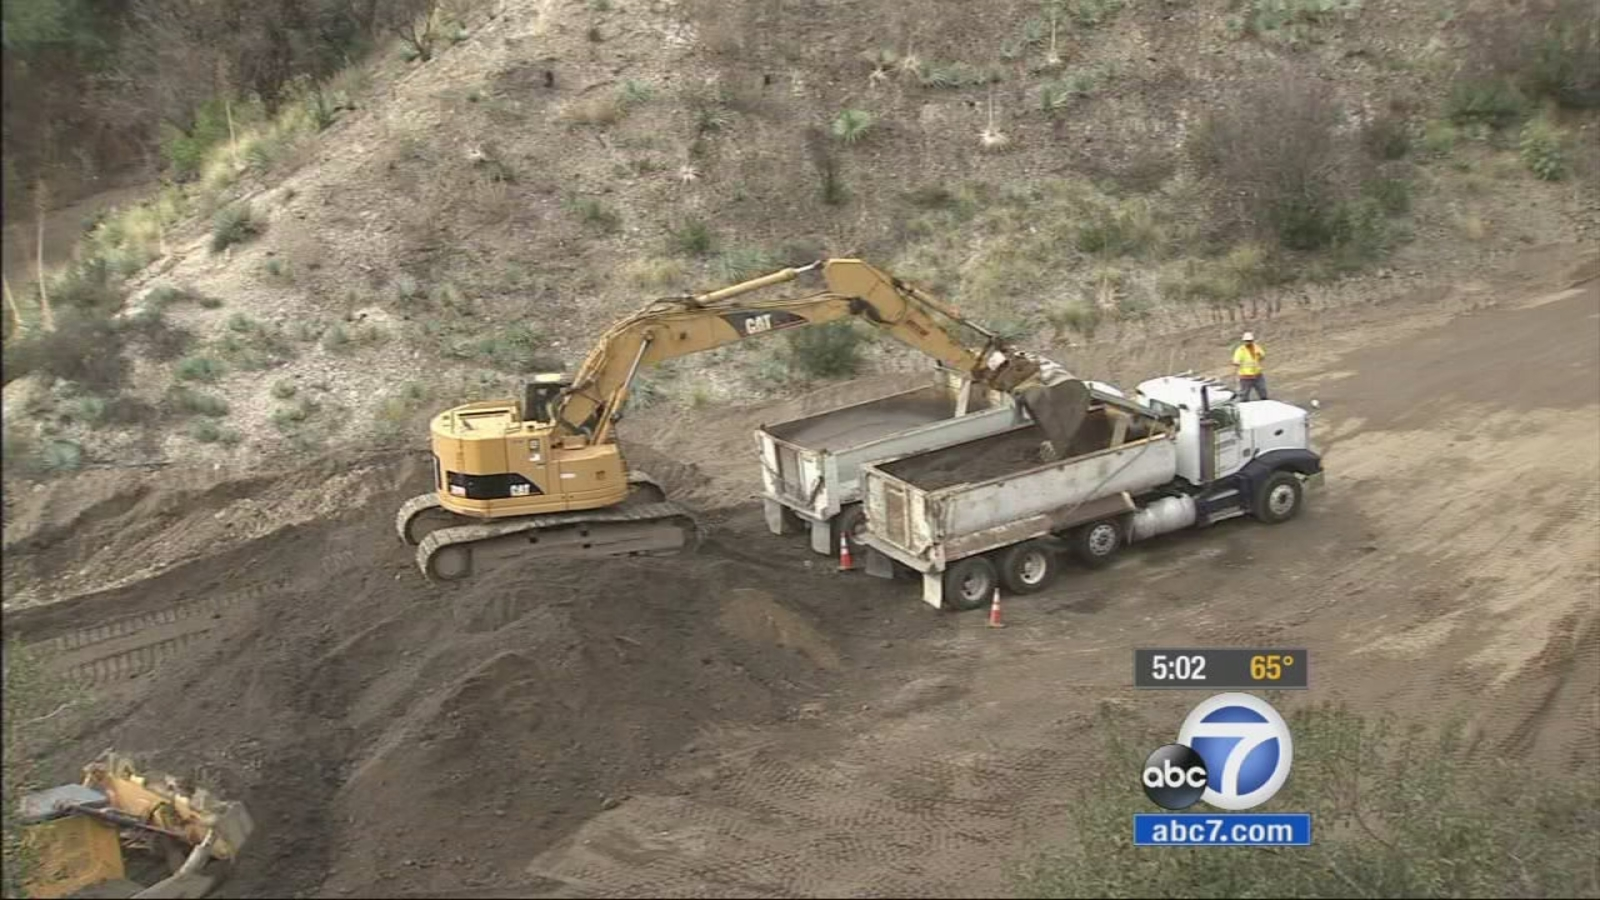 La Rain Catch Basin Clearing Causes Stir With Activists